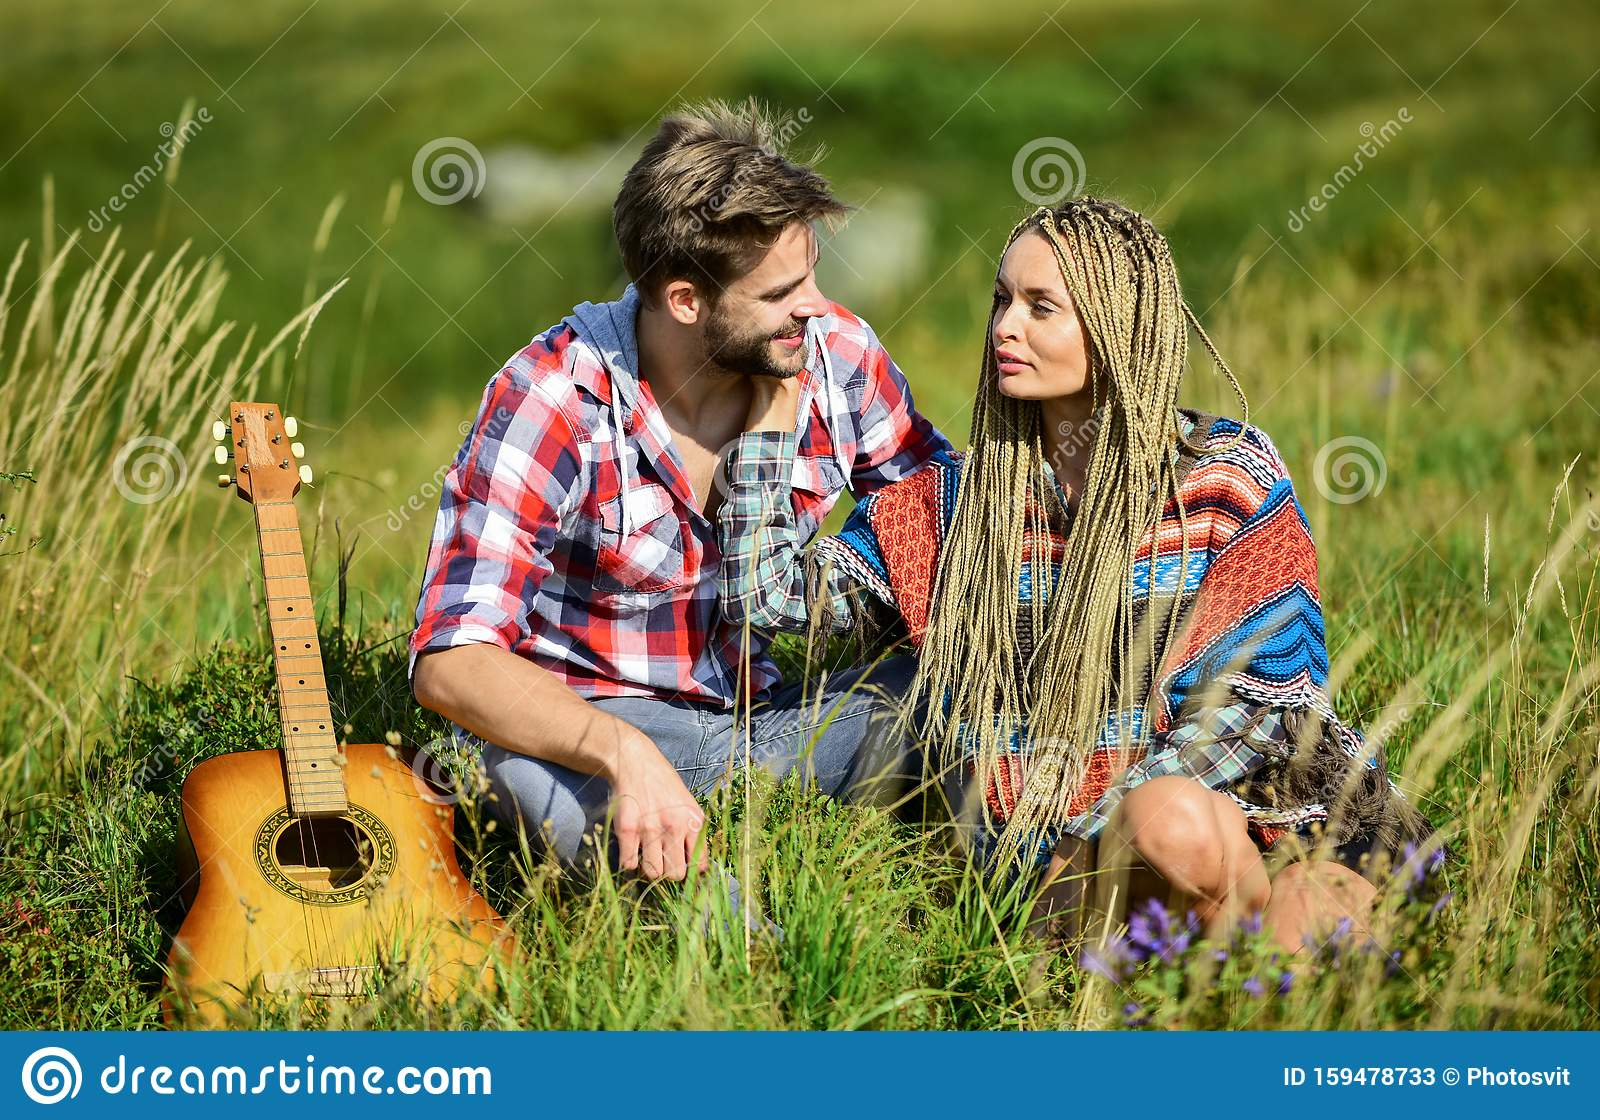 country boy singers dating a country girl